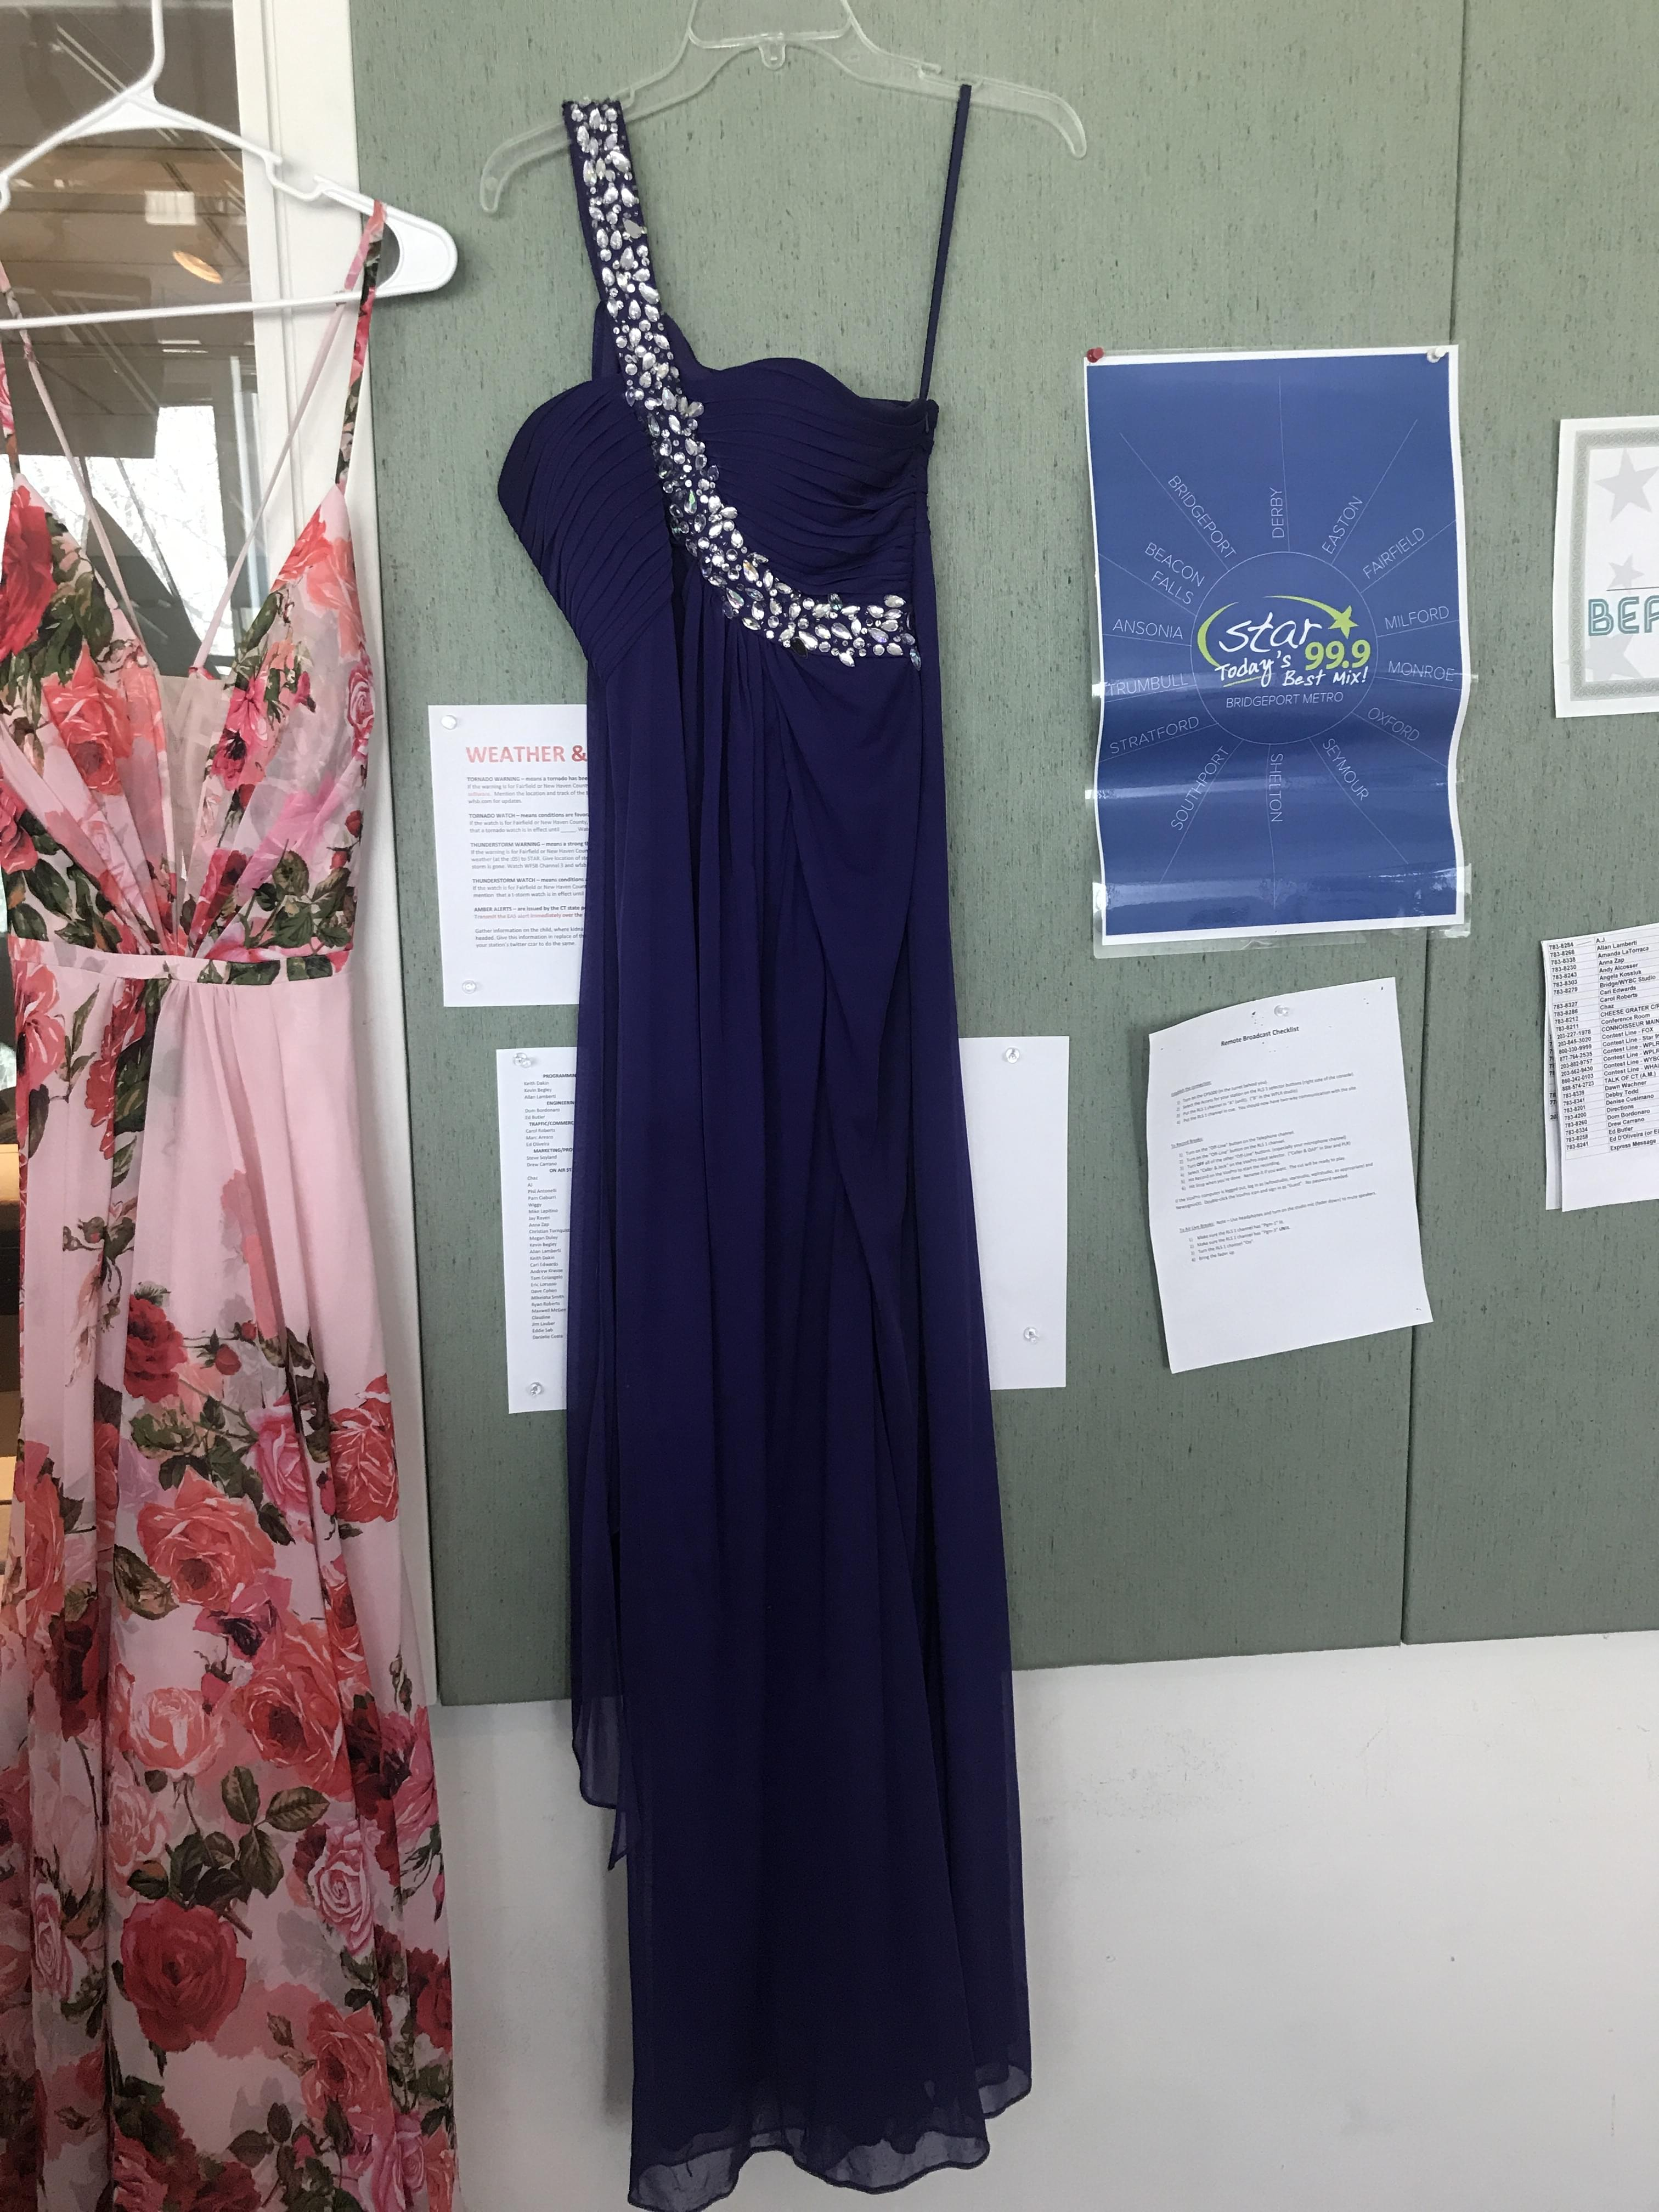 60 Seconds Behind the Scenes- The Derby Prom shop